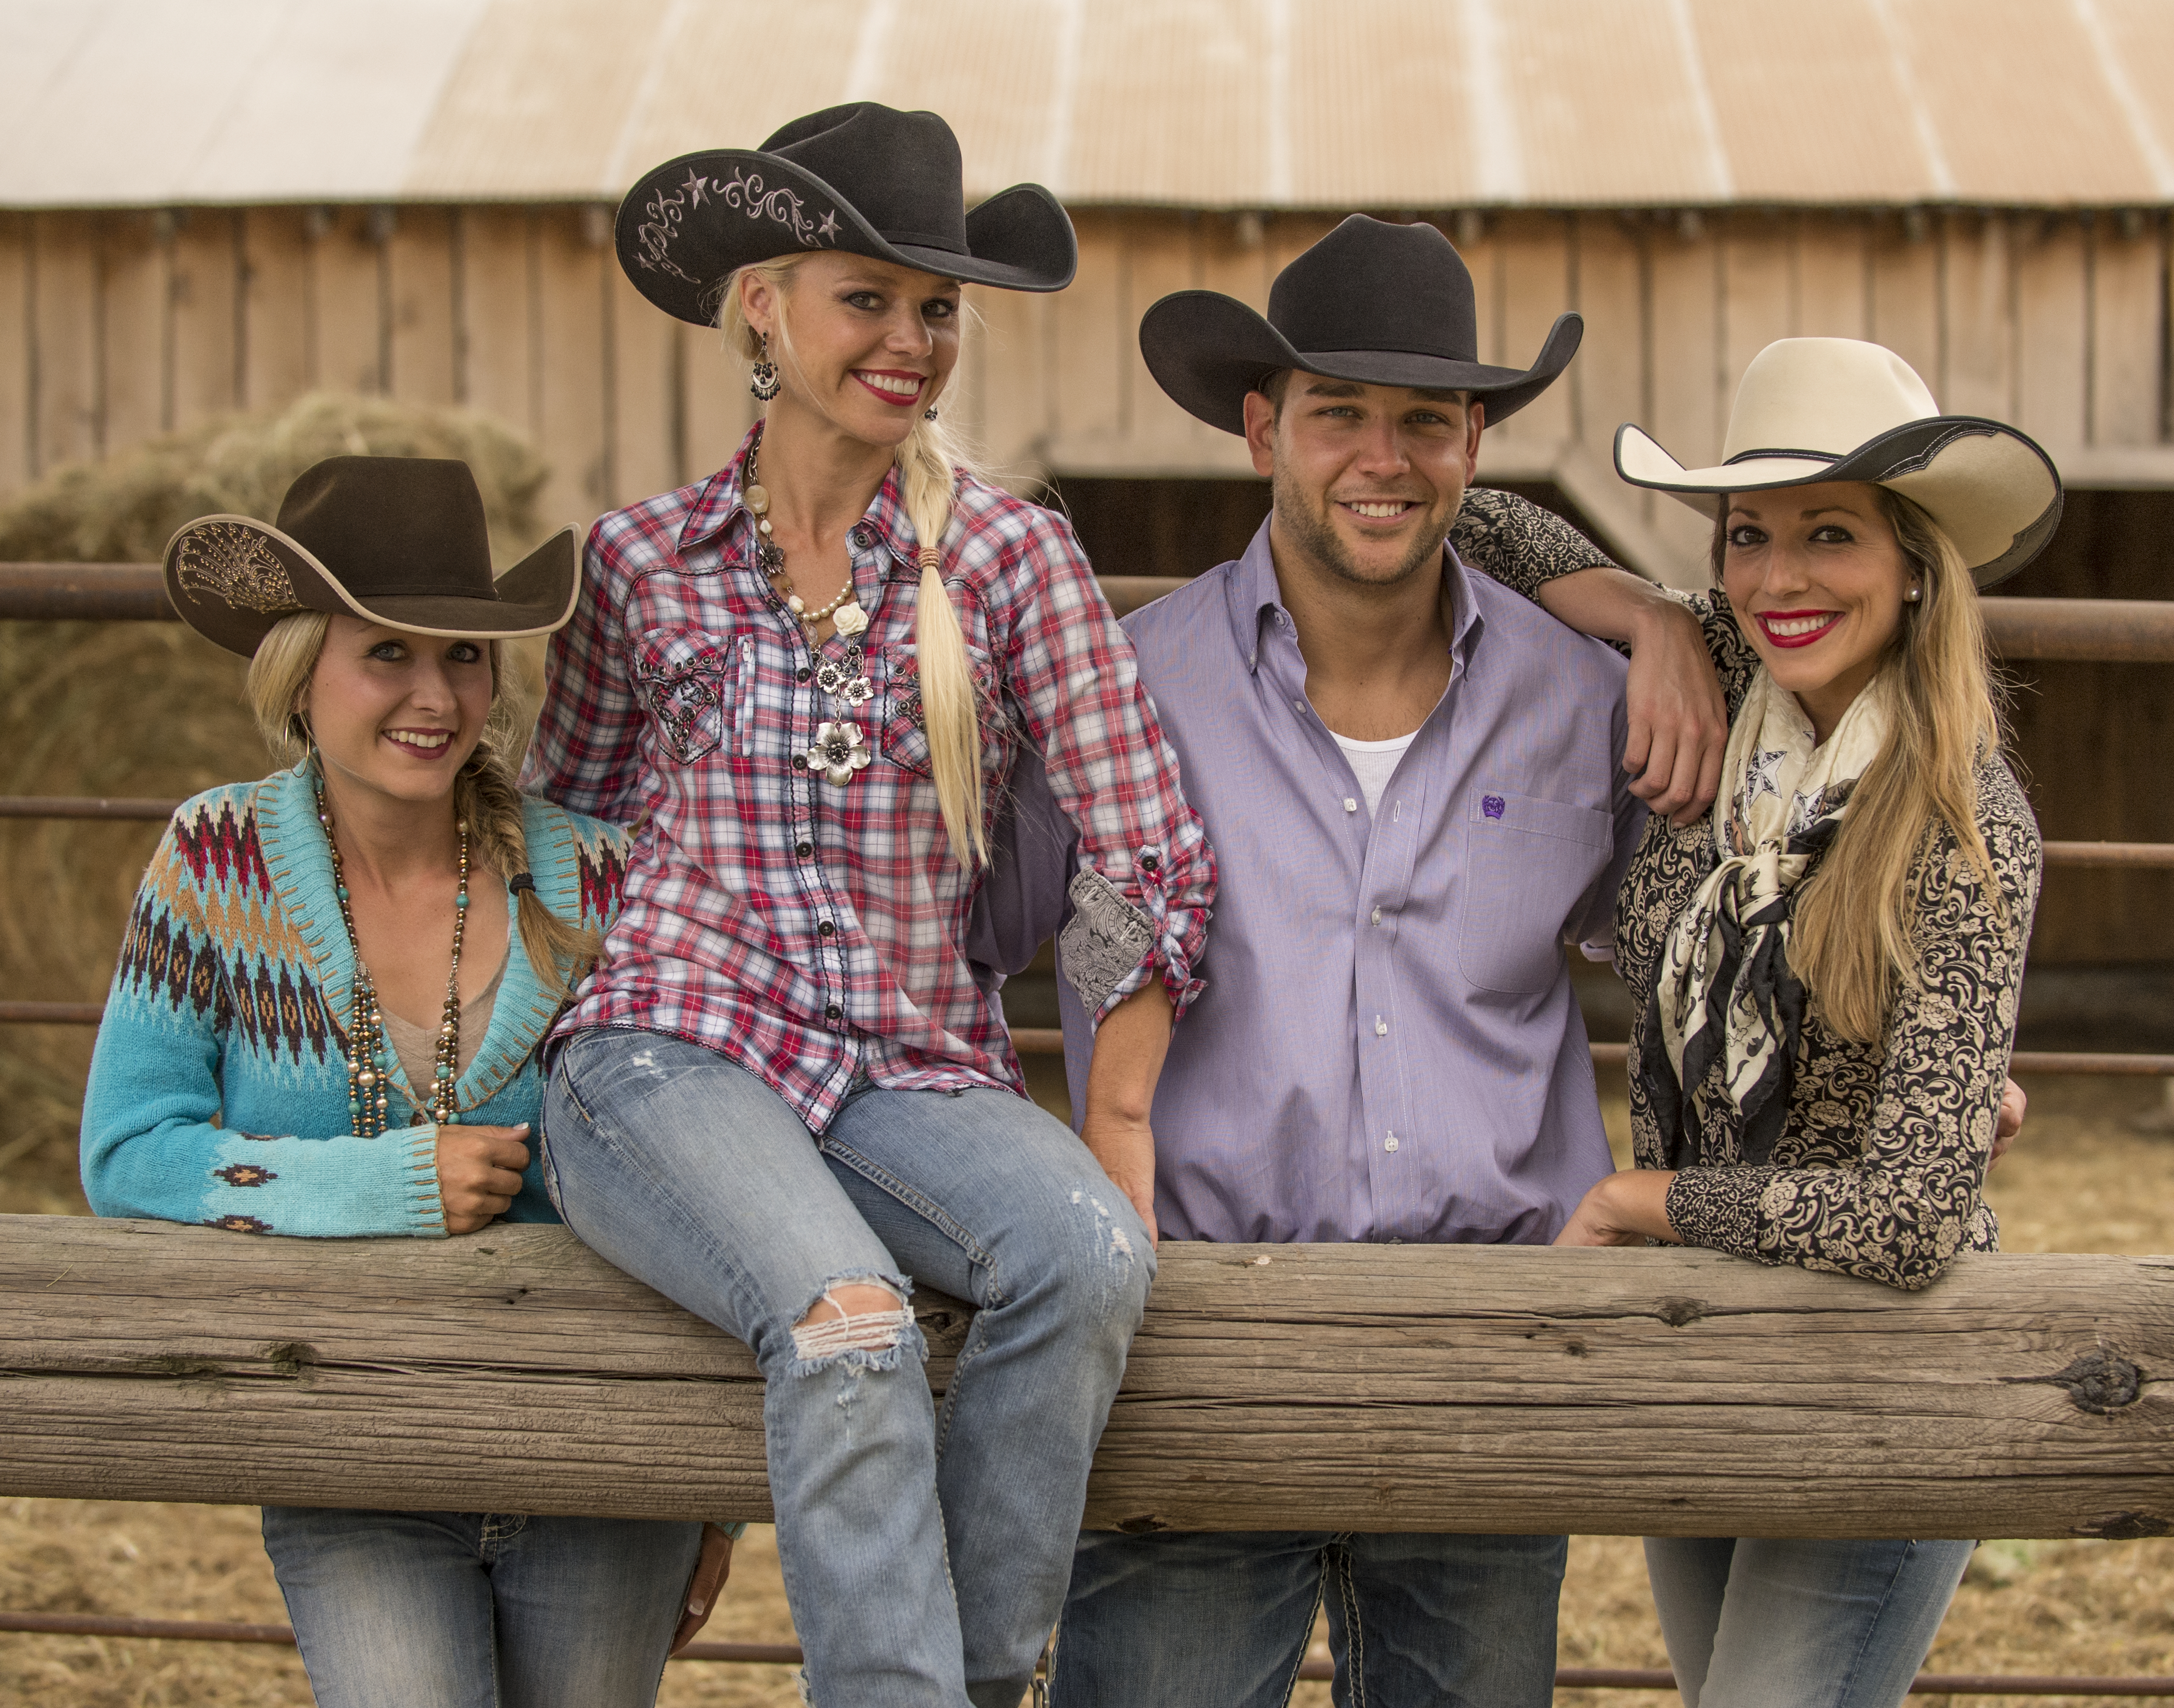 four cowboys and cowgirls in jw brooks custom hats